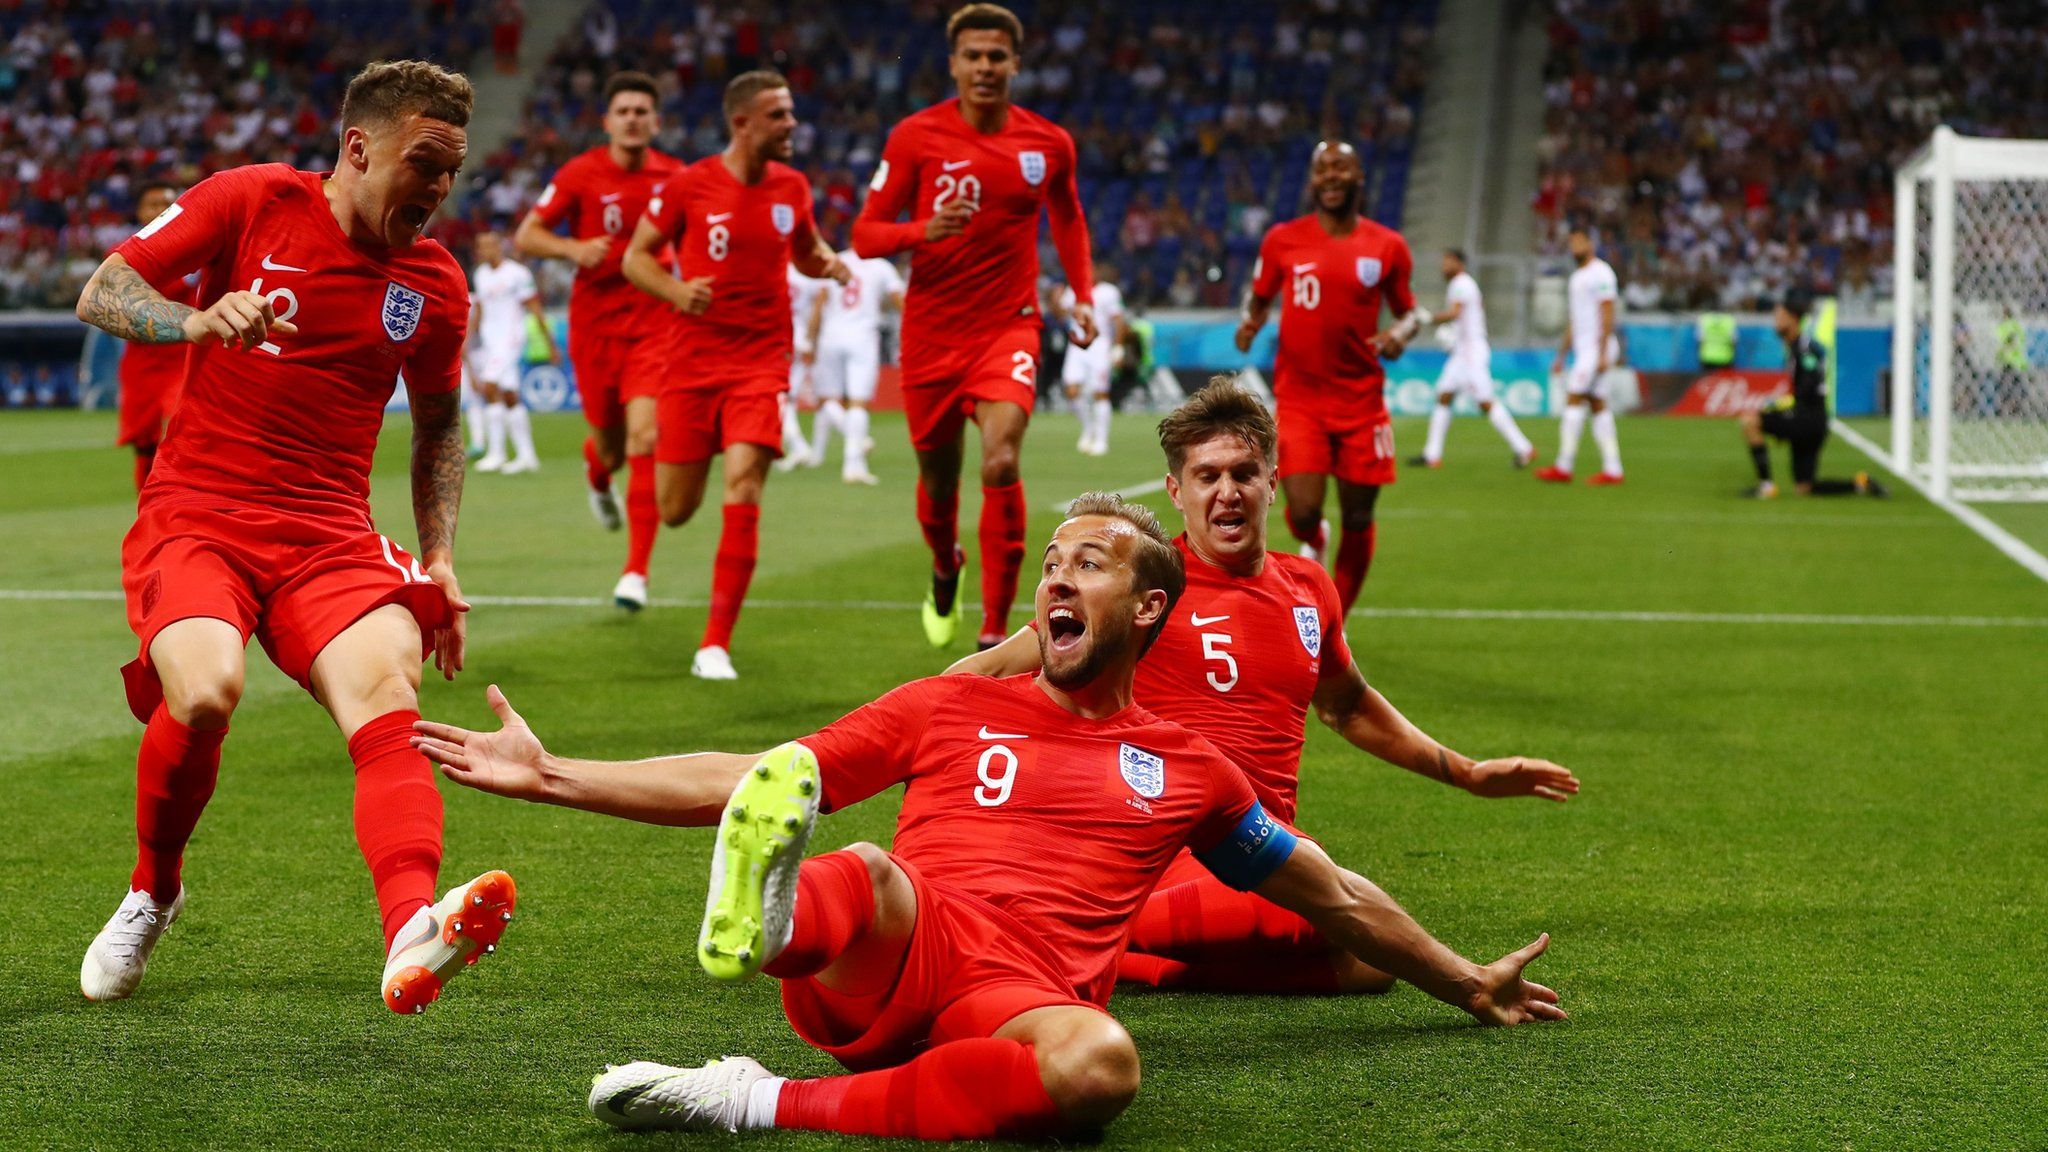 Kane powers England to win over Tunisia